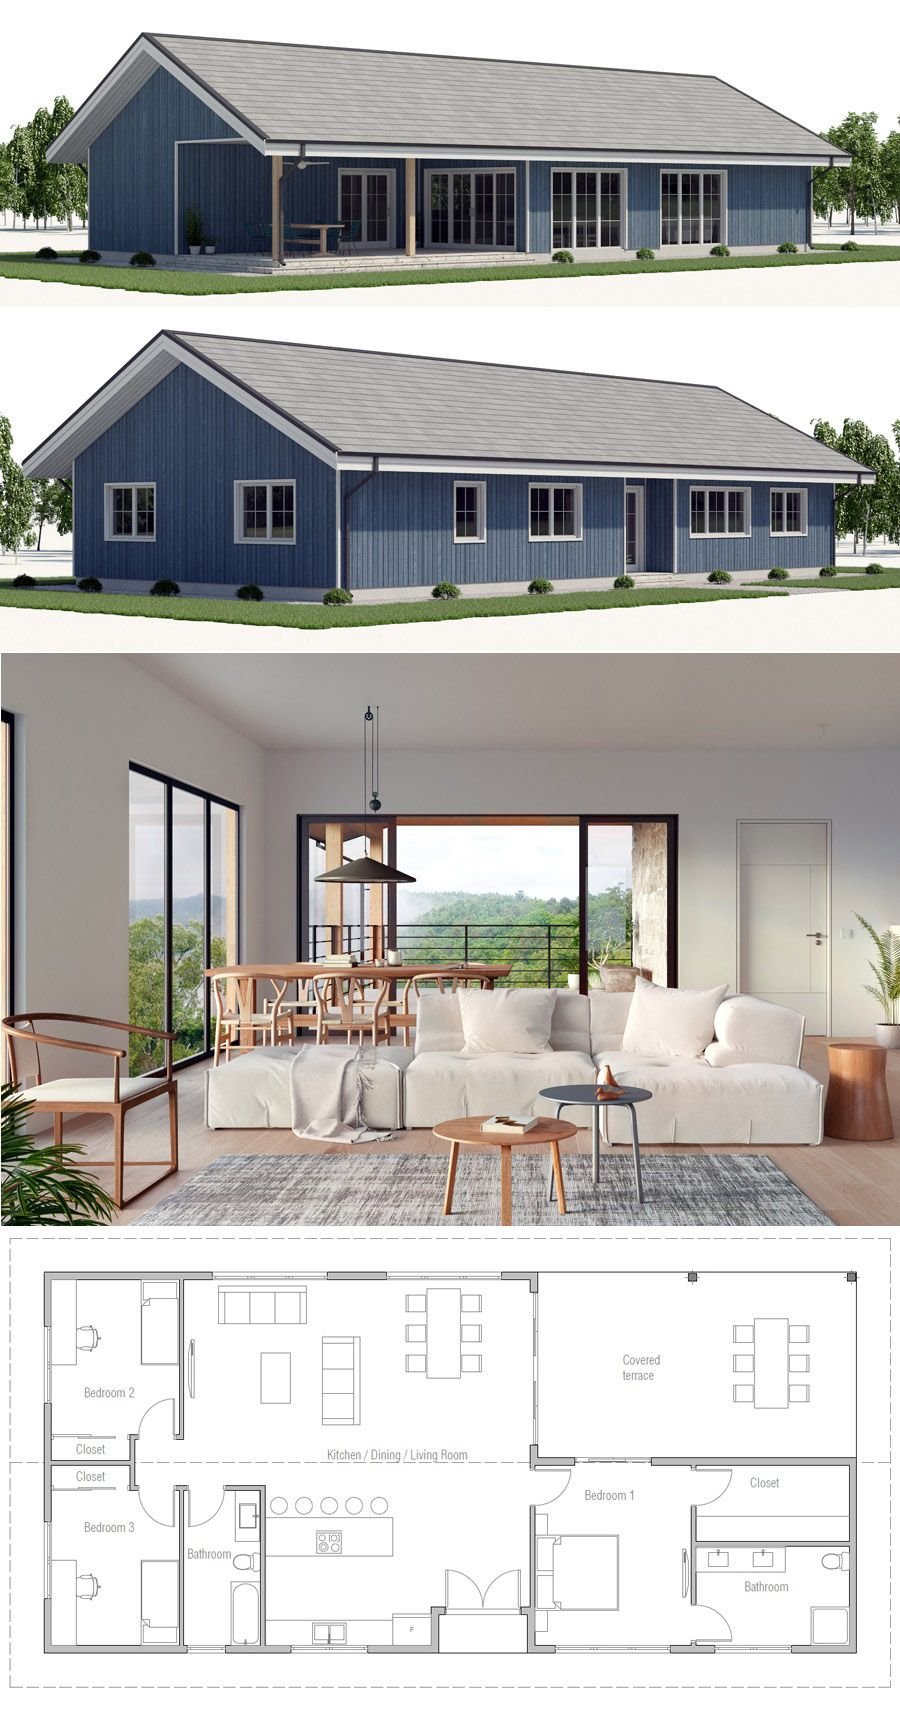 Home Decor Architecture Architecture Homedecor Interiordesign Affordable House Plans Architecture House New House Plans